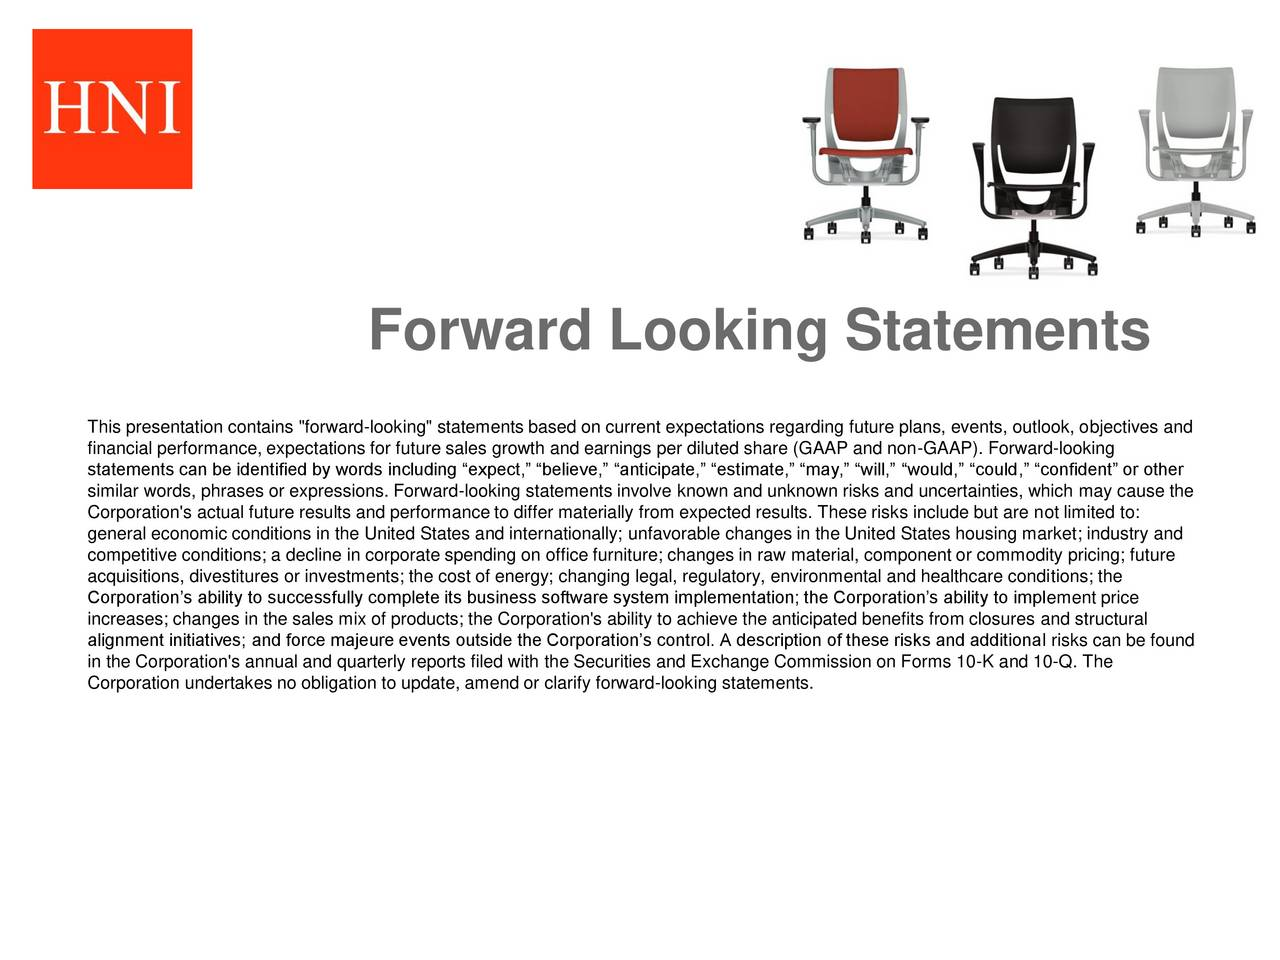 "This presentation contains ""forward-looking"" statements based on current expectations regarding future plans, events, outlook, objectives and financial performance, expectations for future sales growth and earnings per diluted share (GAAP and non-GAAP). Forward-looking statements can be identified by words including expect, believe, anticipate, estimate, may, will, would, could, confident or other similar words, phrases or expressions. Forward-looking statements involve known and unknown risks and uncertainties, which may cause the Corporation's actual future results and performance to differ materially from expected results. These risks include but are not limited to: general economic conditions in the United States and internationally; unfavorable changes in the United States housing market; industry and competitive conditions; a decline in corporate spending on office furniture; changes in raw material, component or commodity pricing; future acquisitions, divestitures or investments; the cost of energy; changing legal, regulatory, environmental and healthcare conditions; the Corporations ability to successfully complete its business software system implementation; the Corporations ability to implement price increases; changes in the sales mix of products; the Corporation's ability to achieve the anticipated benefits from closures and structural alignment initiatives; and force majeure events outside the Corporations control. A description of these risks and additional risks can be found in the Corporation's annual and quarterly reports filed with the Securities and Exchange Commission on Forms 10-K and 10-Q. The Corporation undertakes no obligation to update, amend or clarify forward-looking statements."